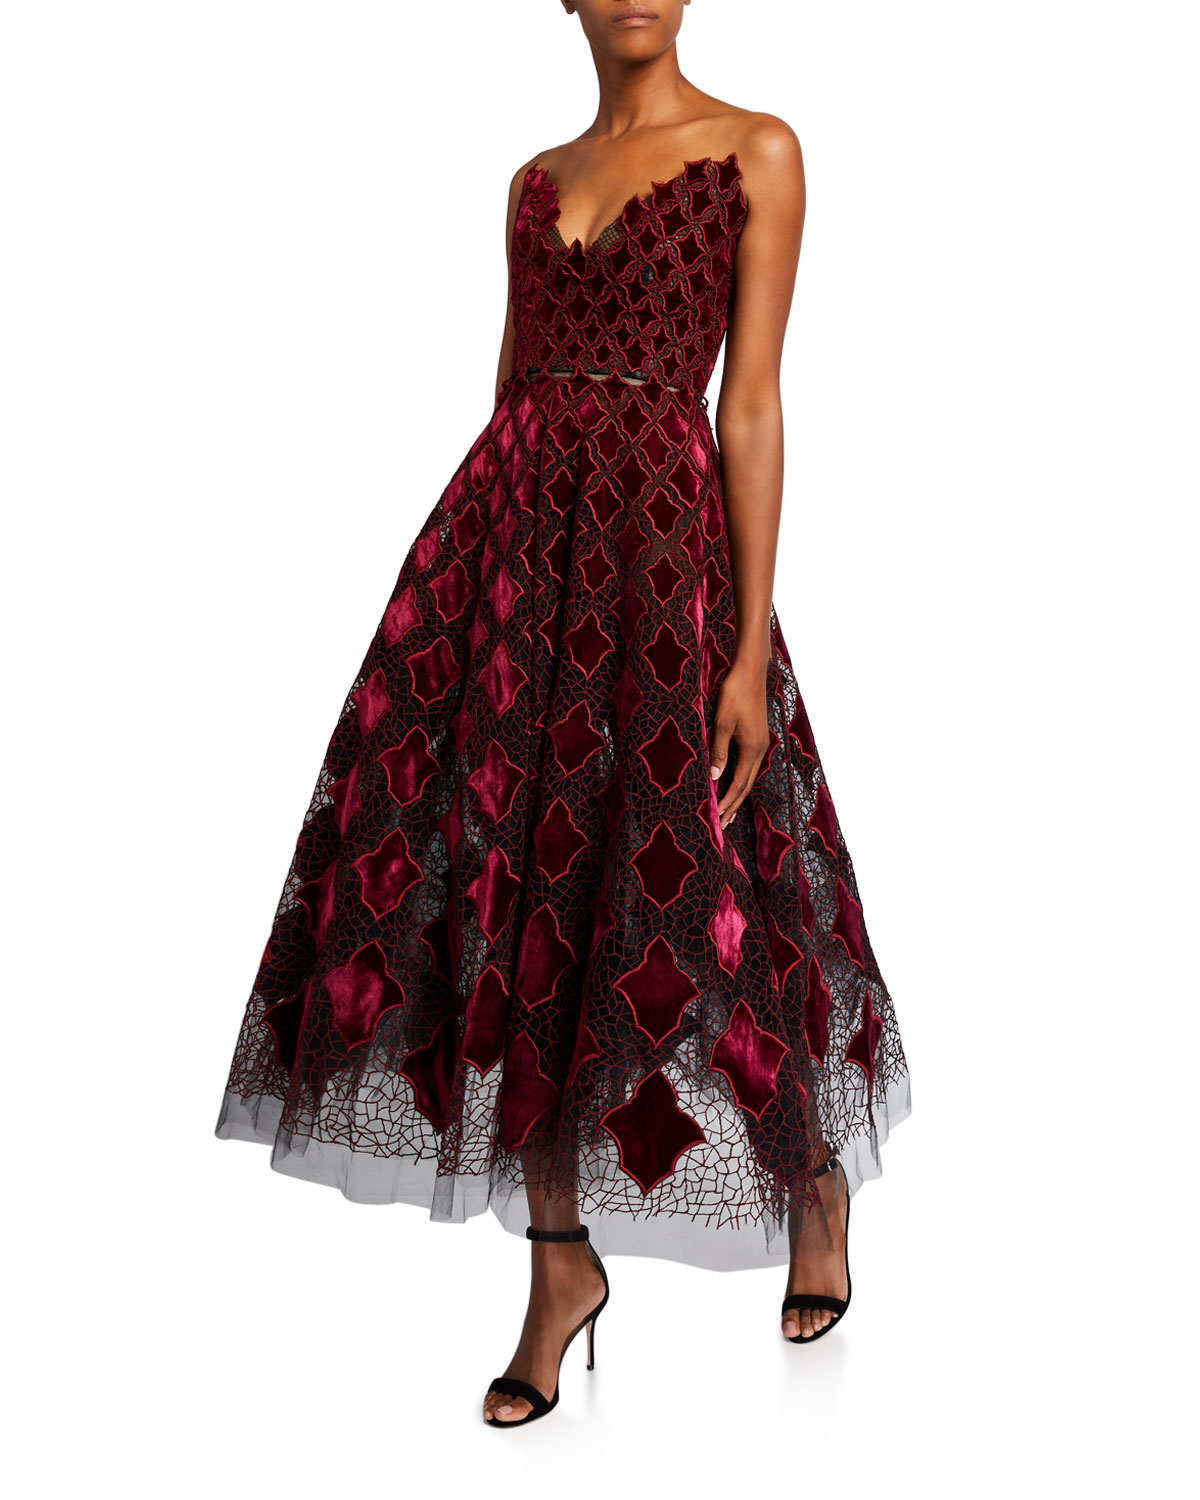 Strapless Velvet Embroidered Tea Length Dress by Oscar De La Renta